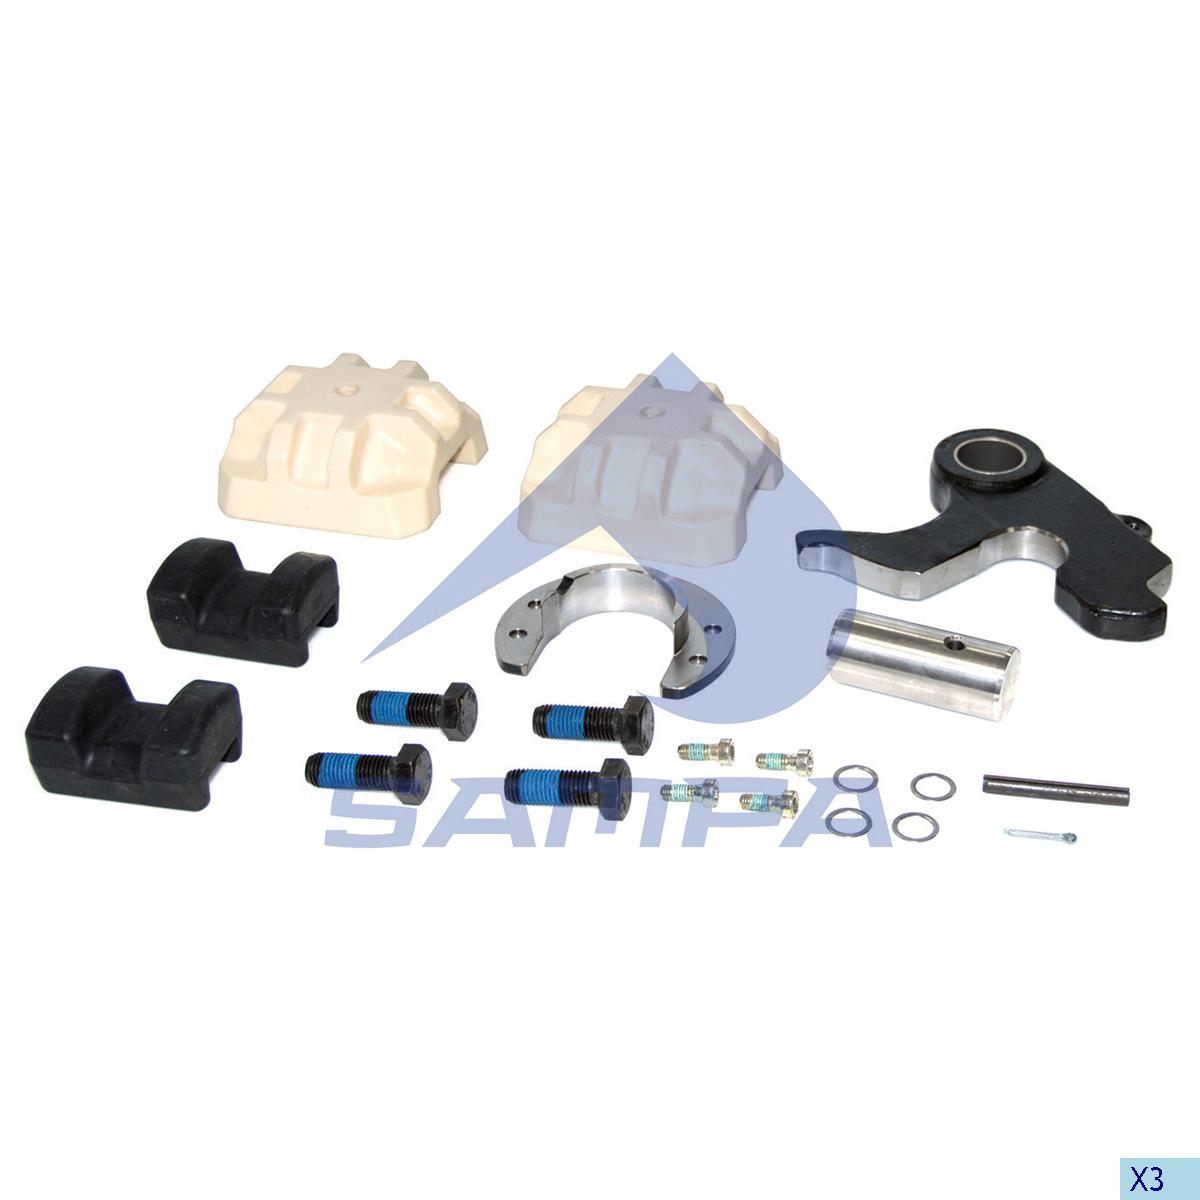 Repair Kit, Fifth Wheel, Complementary Equipment